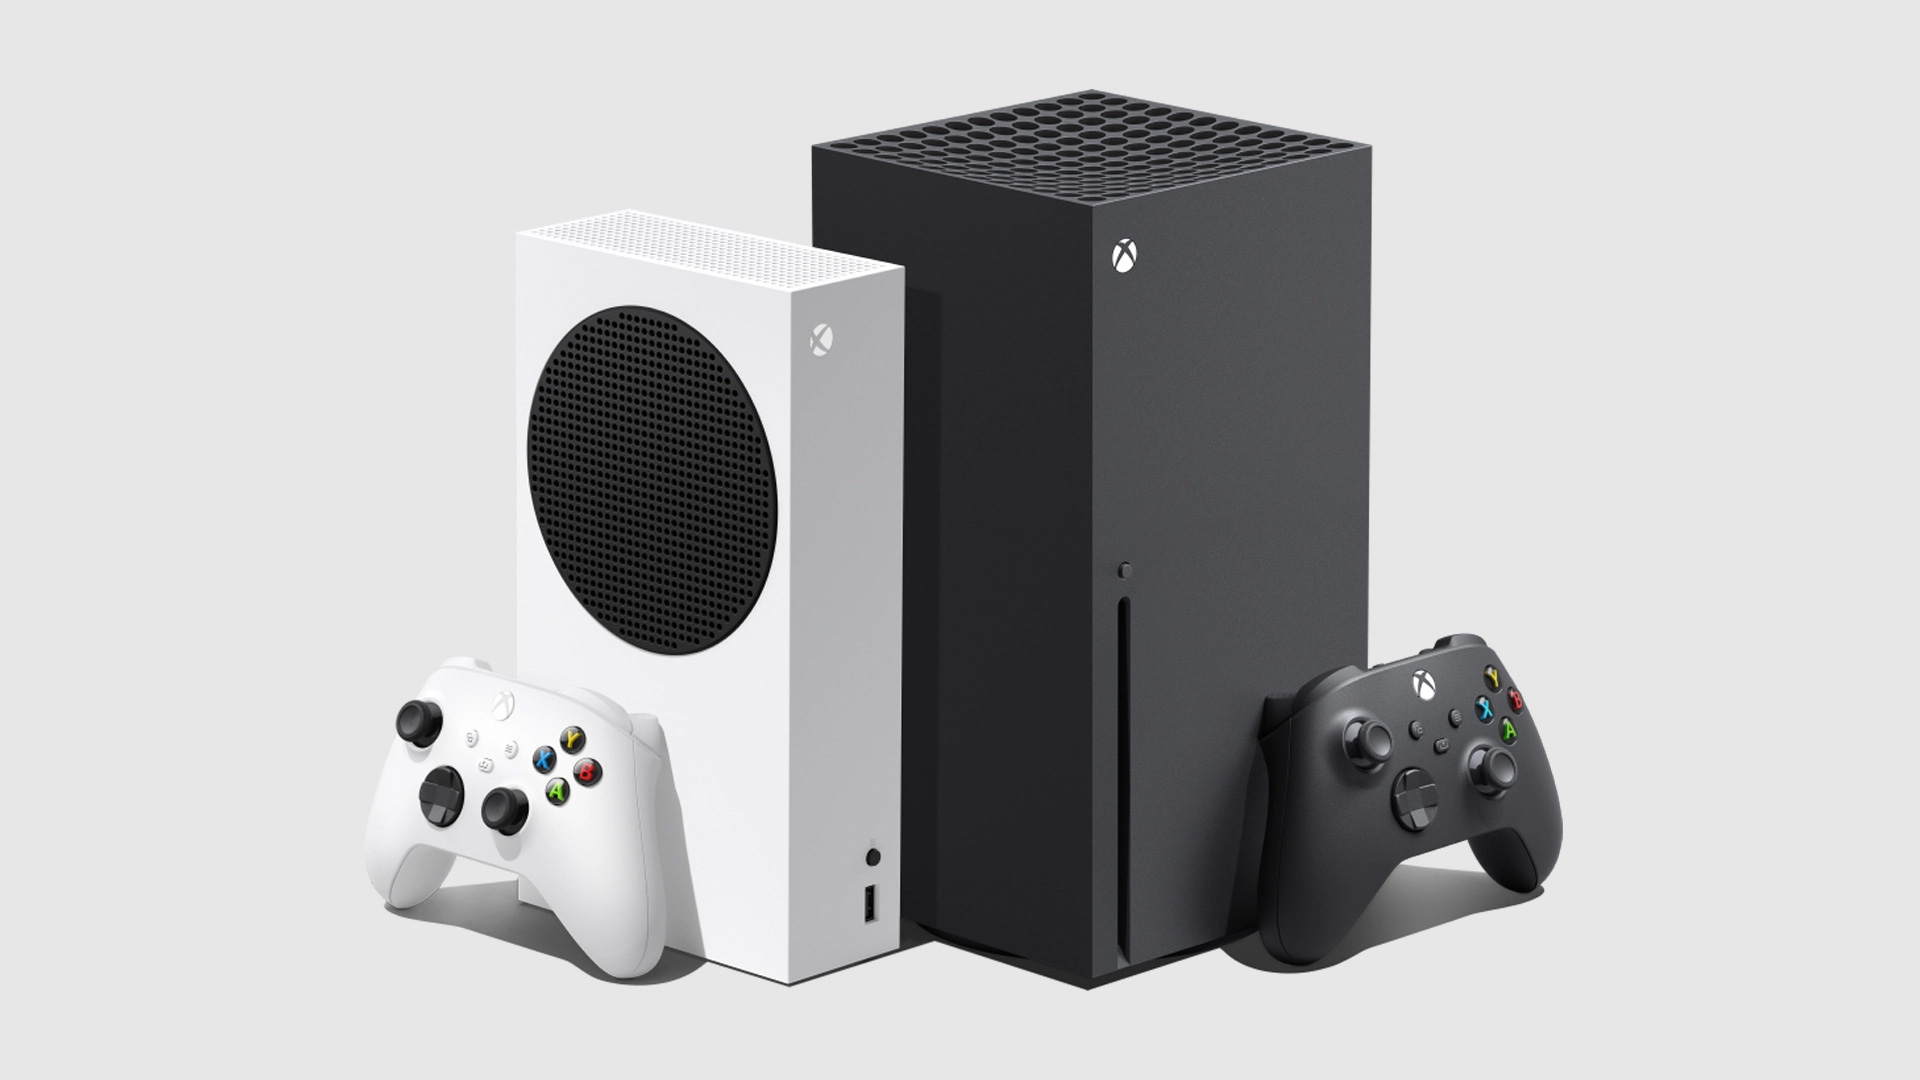 Xbox Series X|S featured image